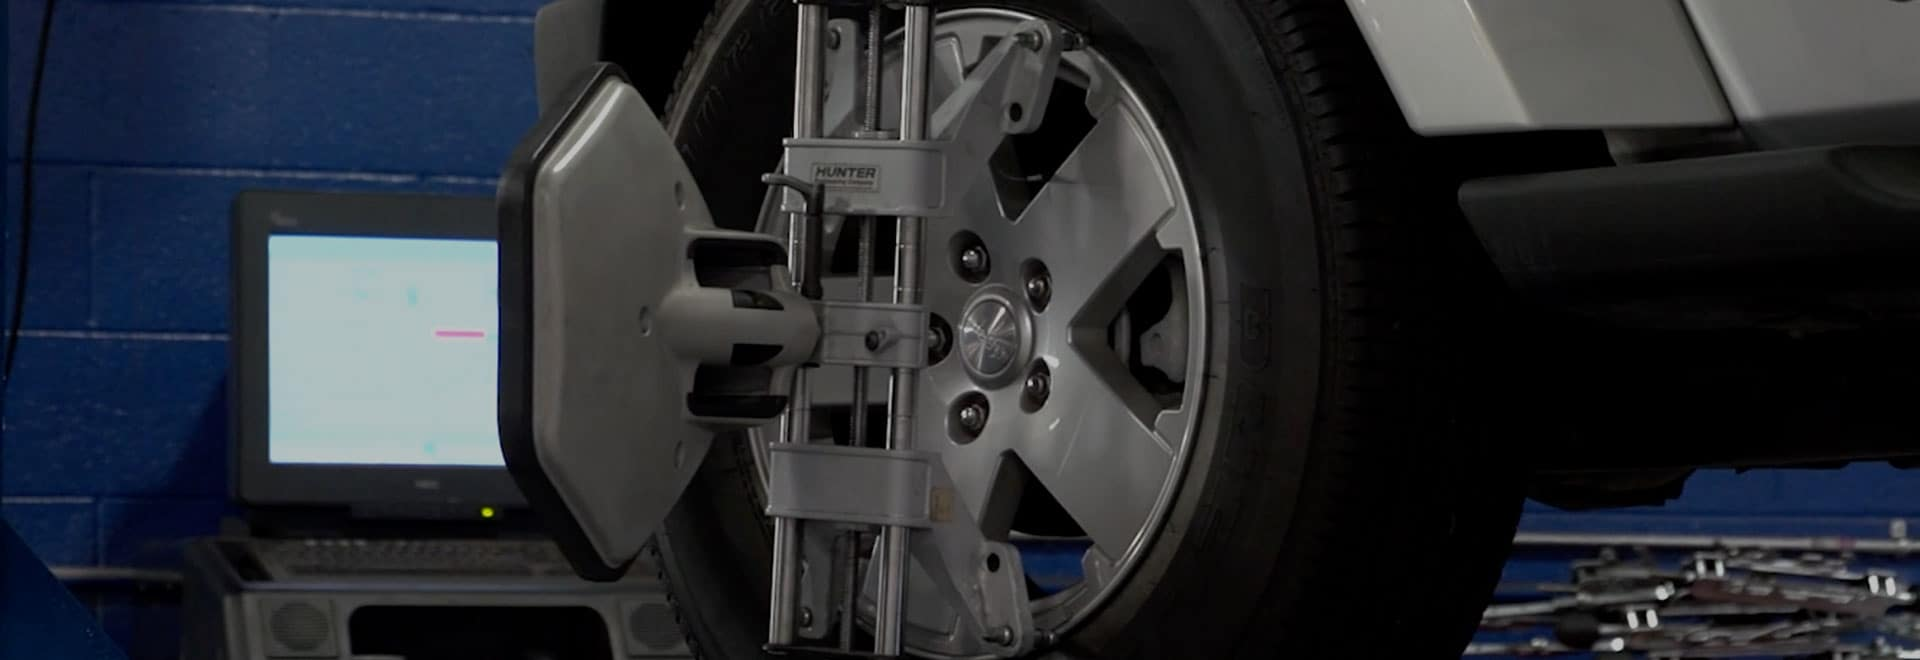 When do I need a wheel alignment? | Safford CJDRF of Springfield